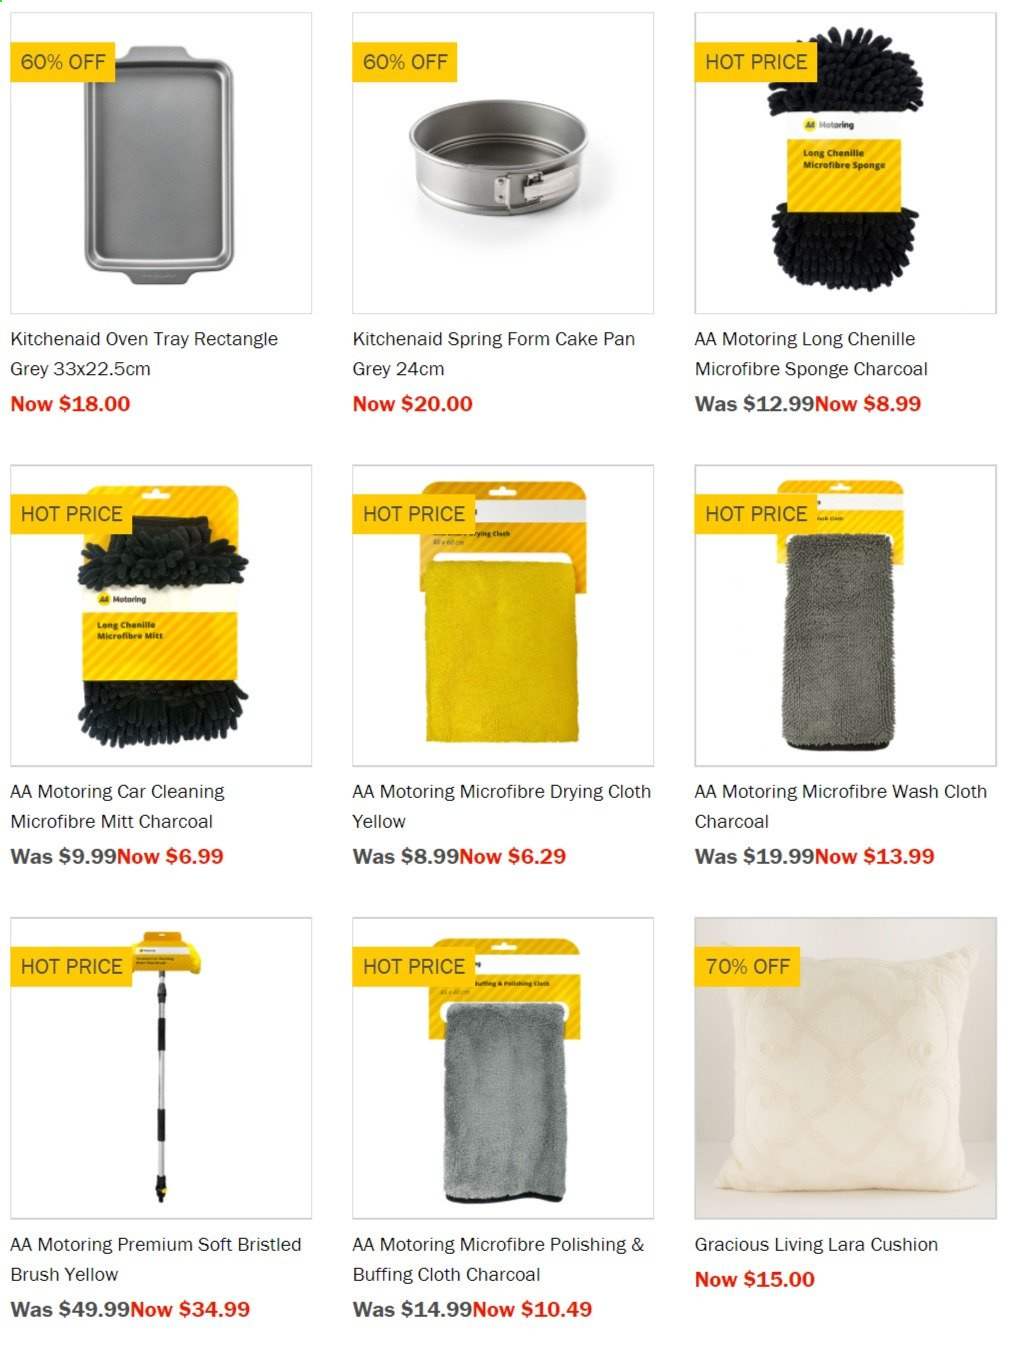 Briscoes mailer - Sales products - cushion, KitchenAid, tray, pan, cake pan, oven, charcoal, sponge, brush. Page 1.